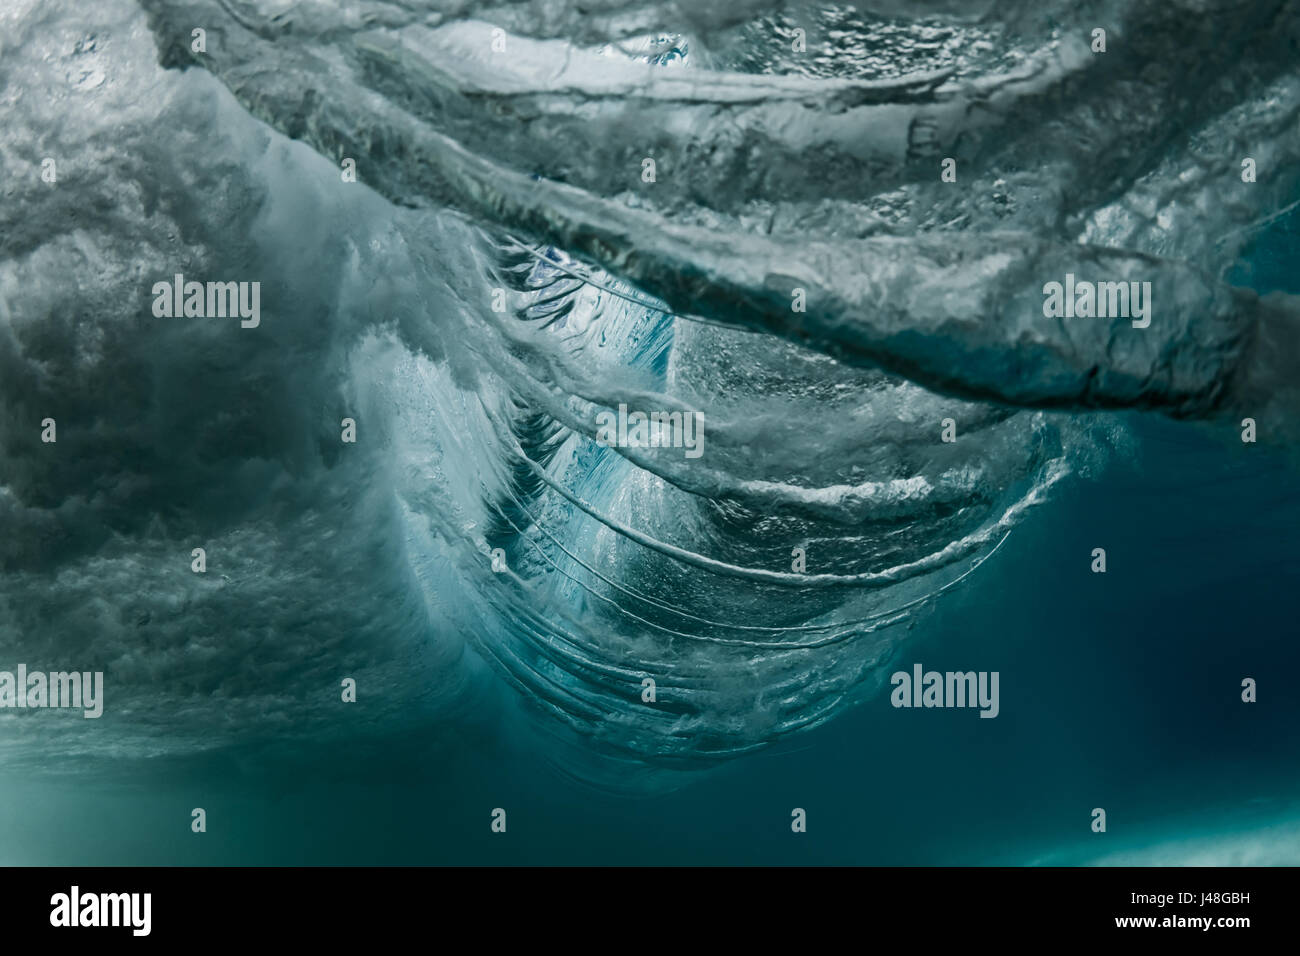 HAWAII, USA: INCREDIBLE images have revealed the anatomy of a wave ...